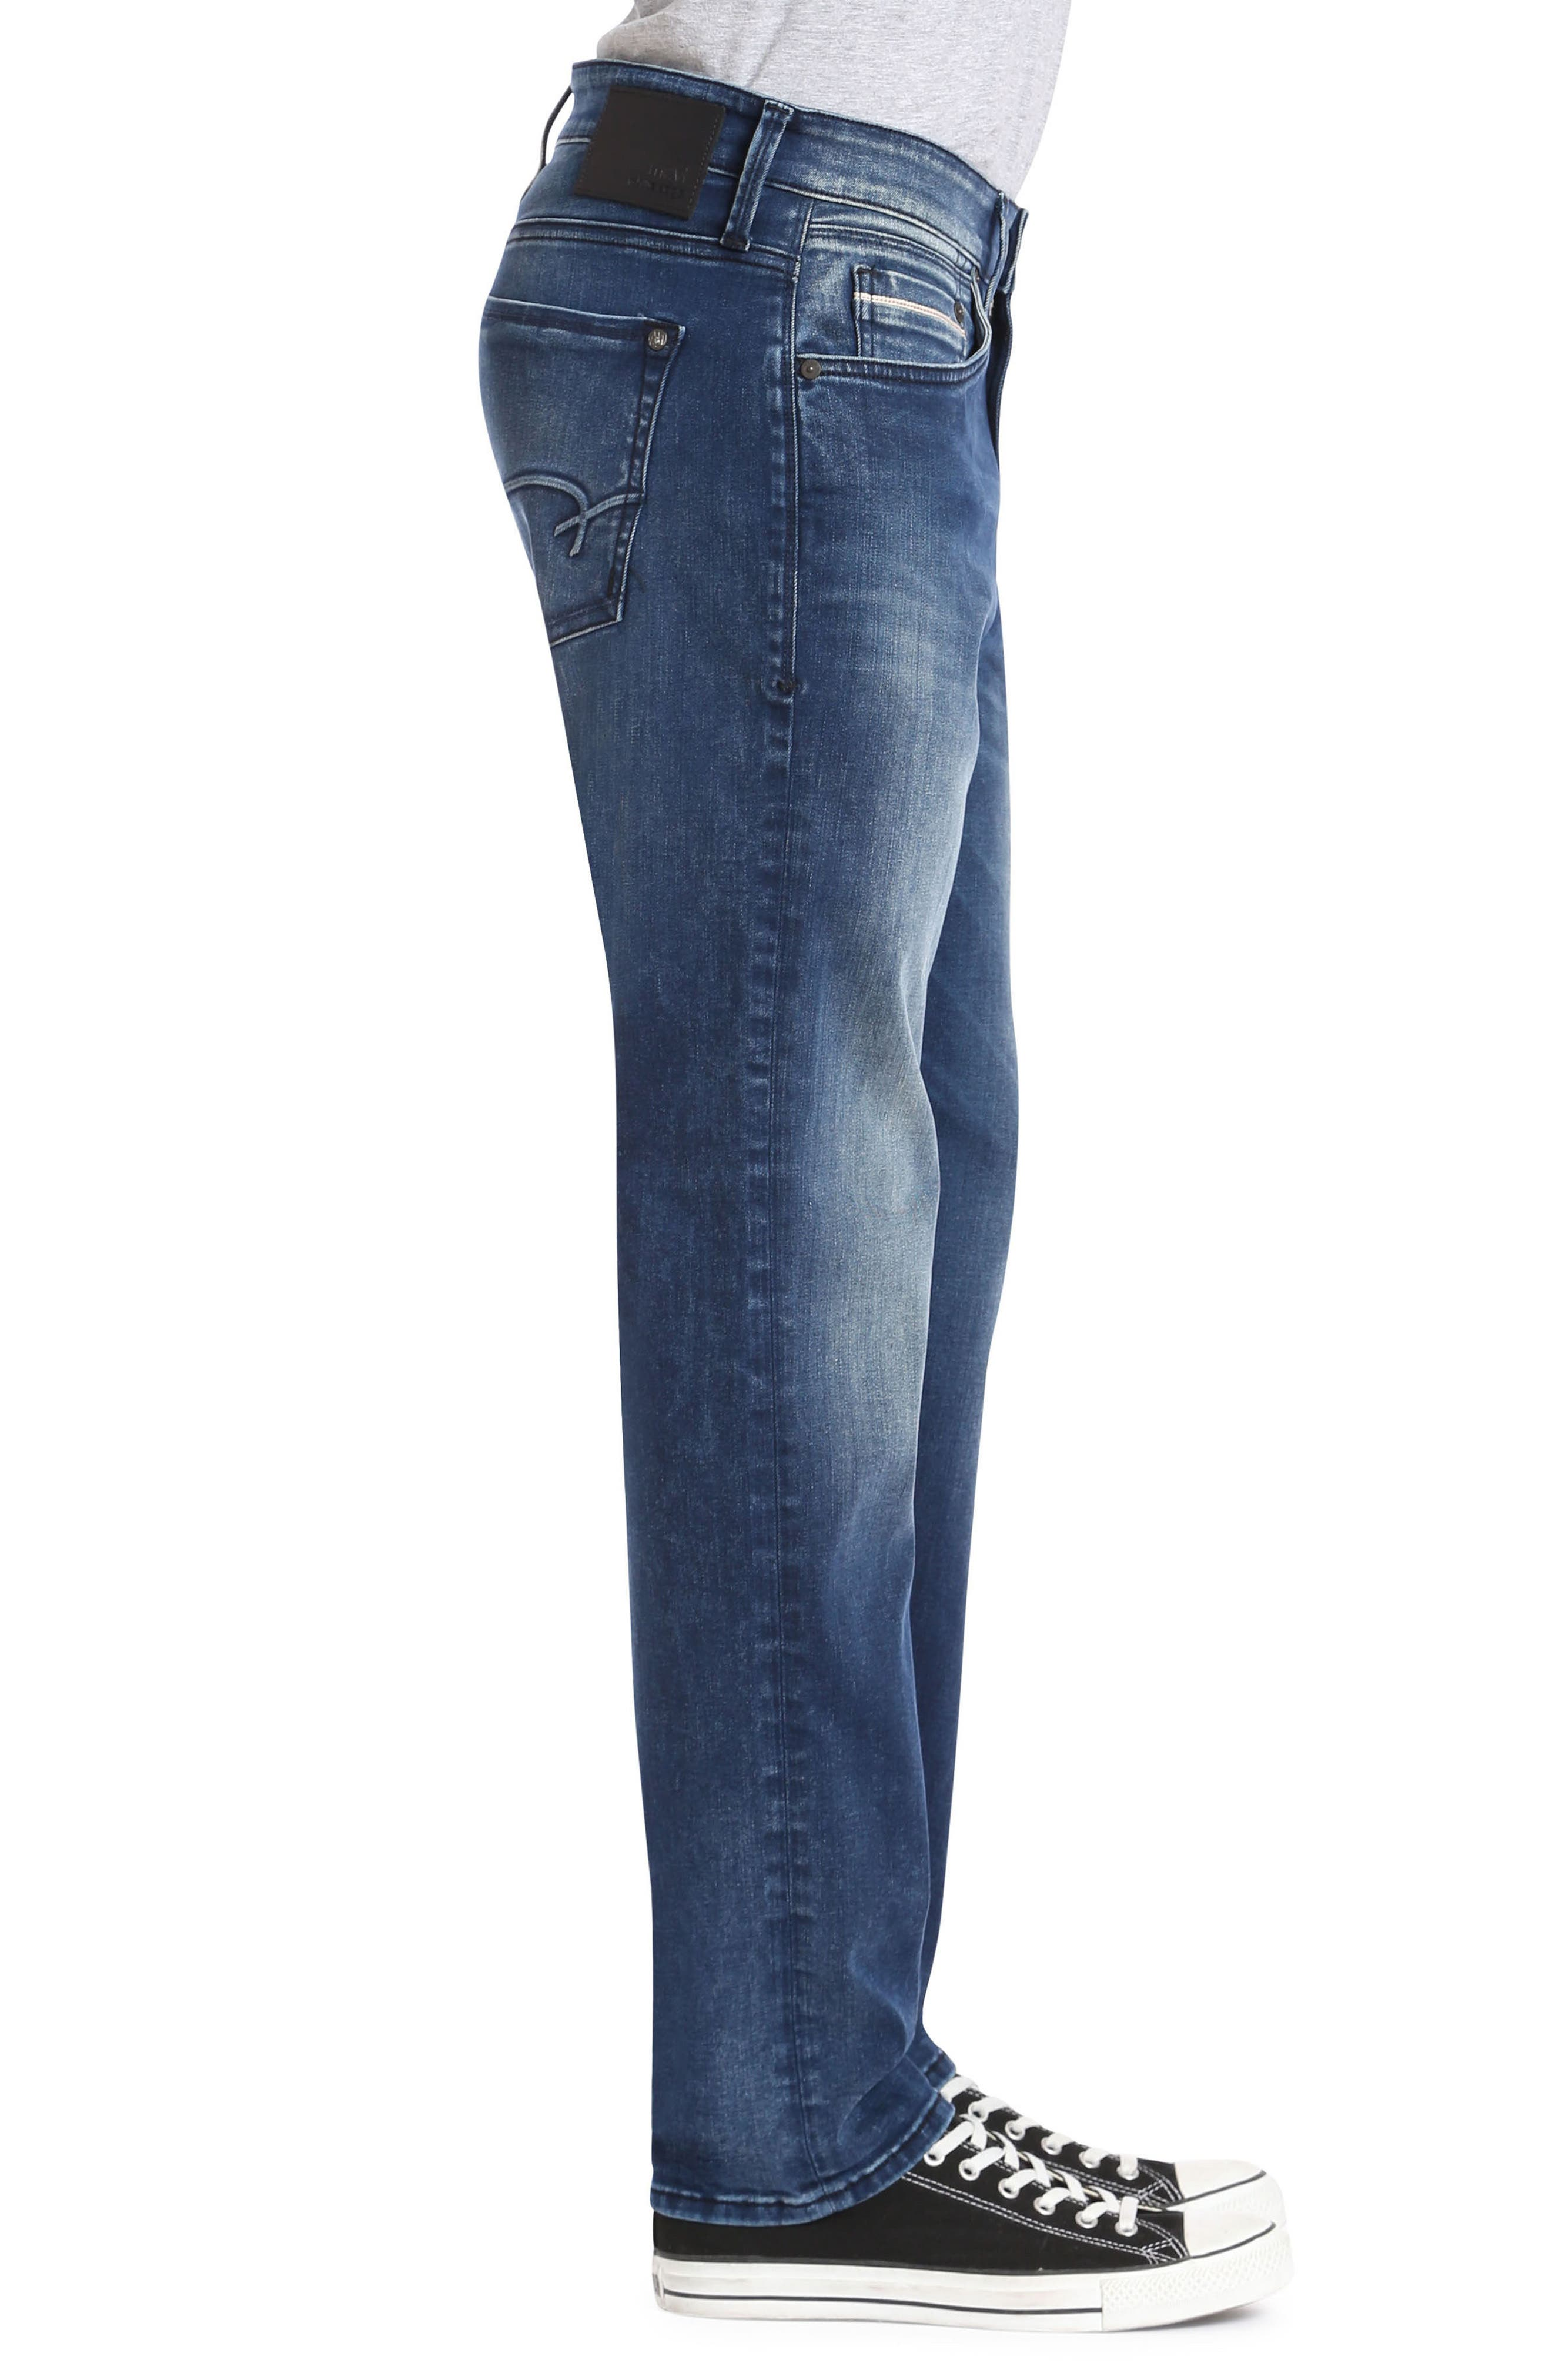 Marcus Slim Straight Leg Jeans,                             Alternate thumbnail 3, color,                             Forest Blue White Edge